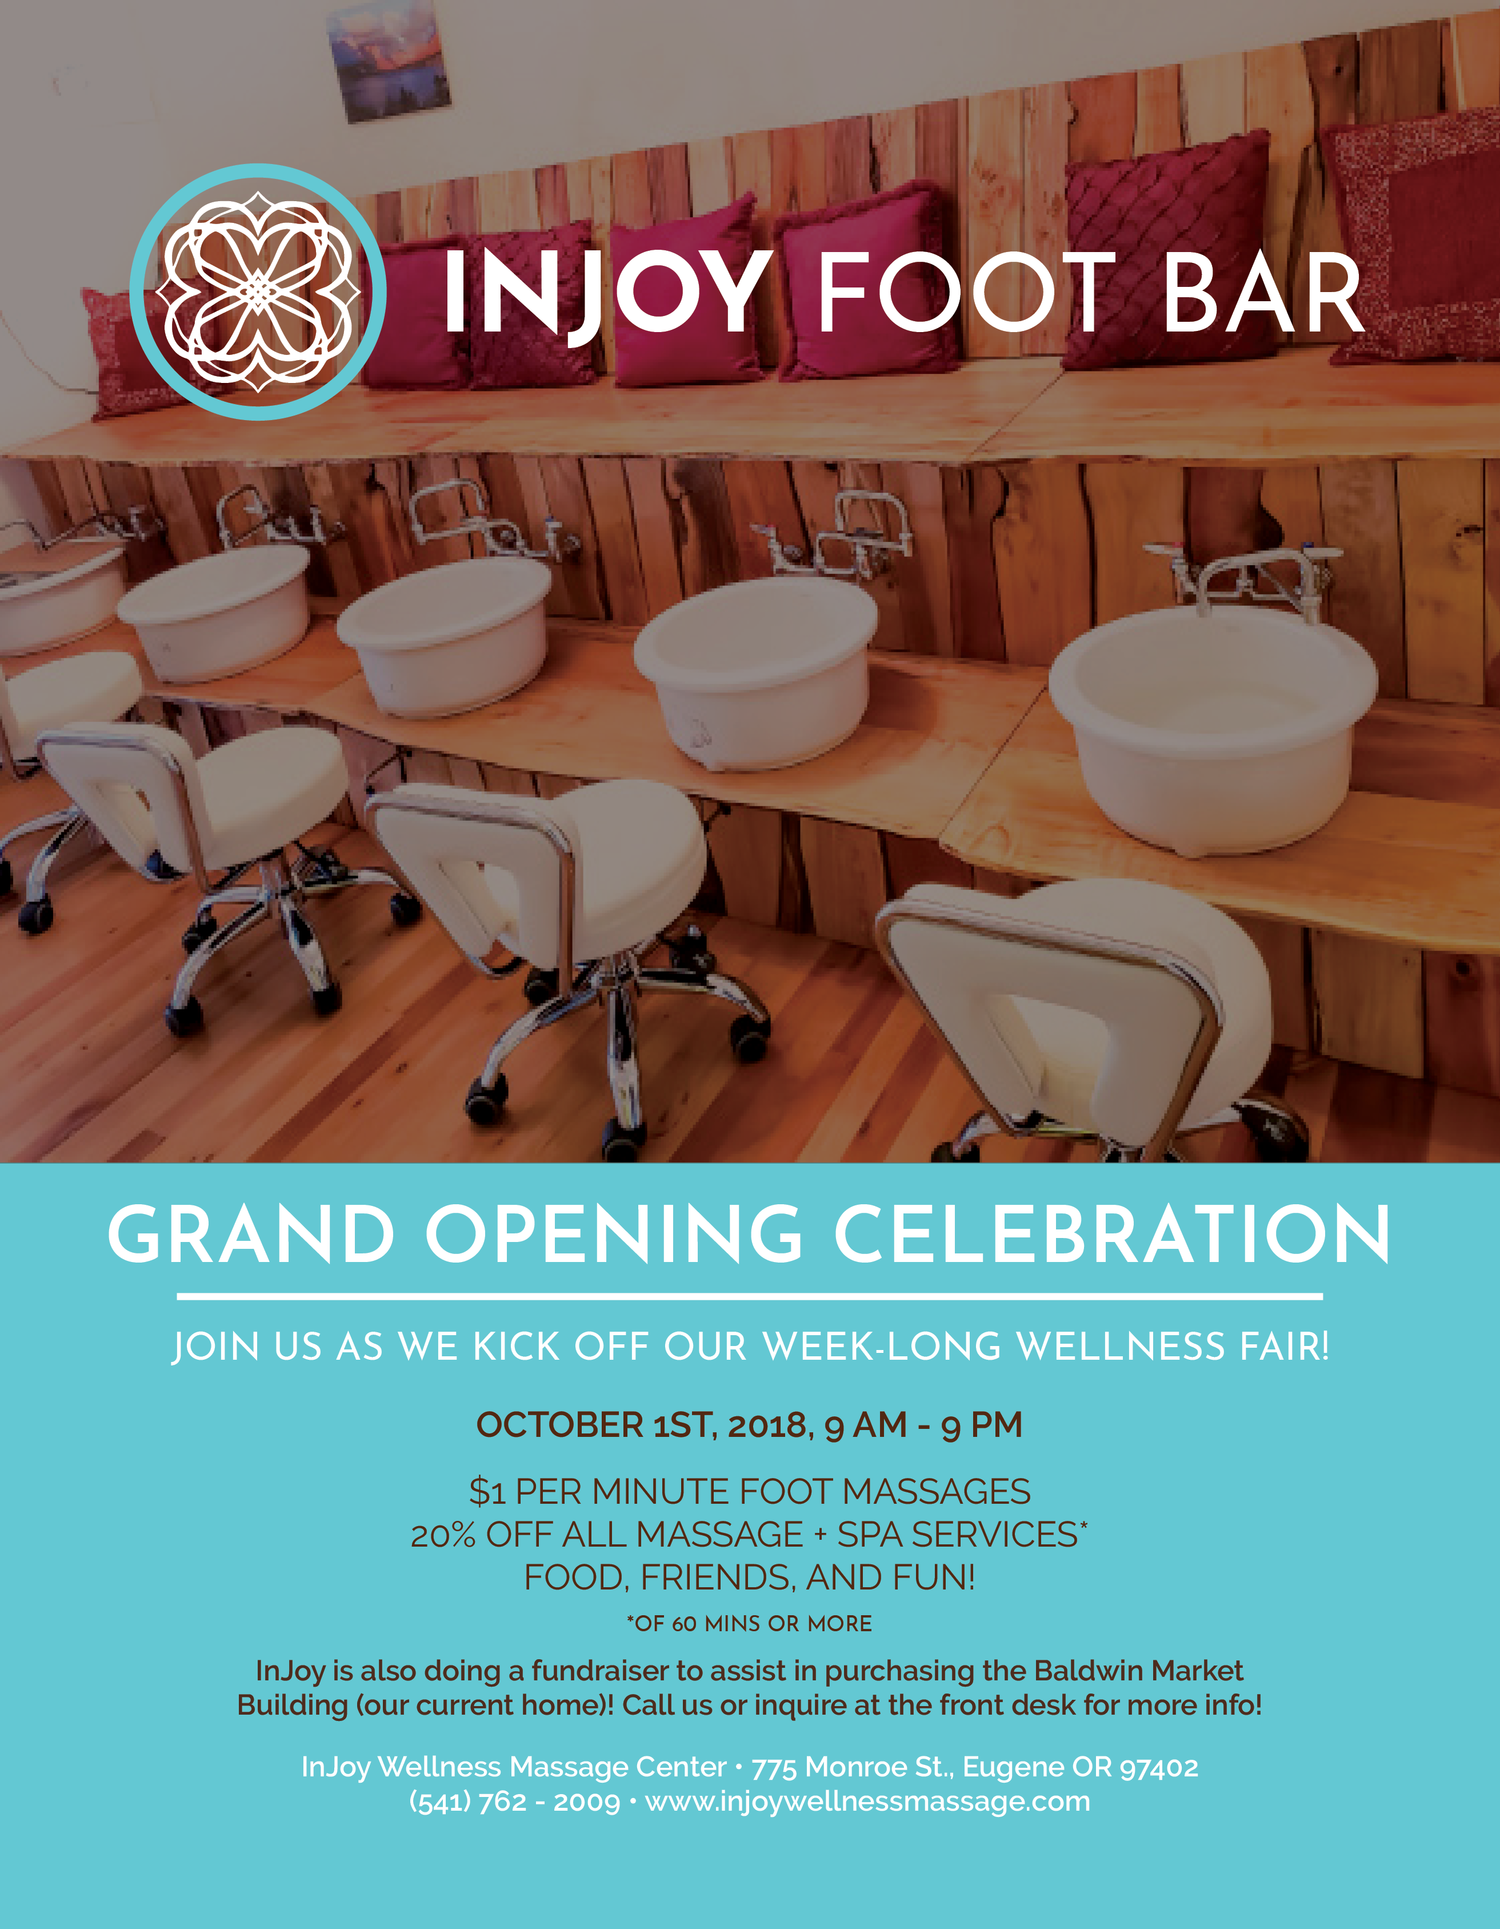 InJoy Flyer - Grand Opening Celebration for Foot Bar.png